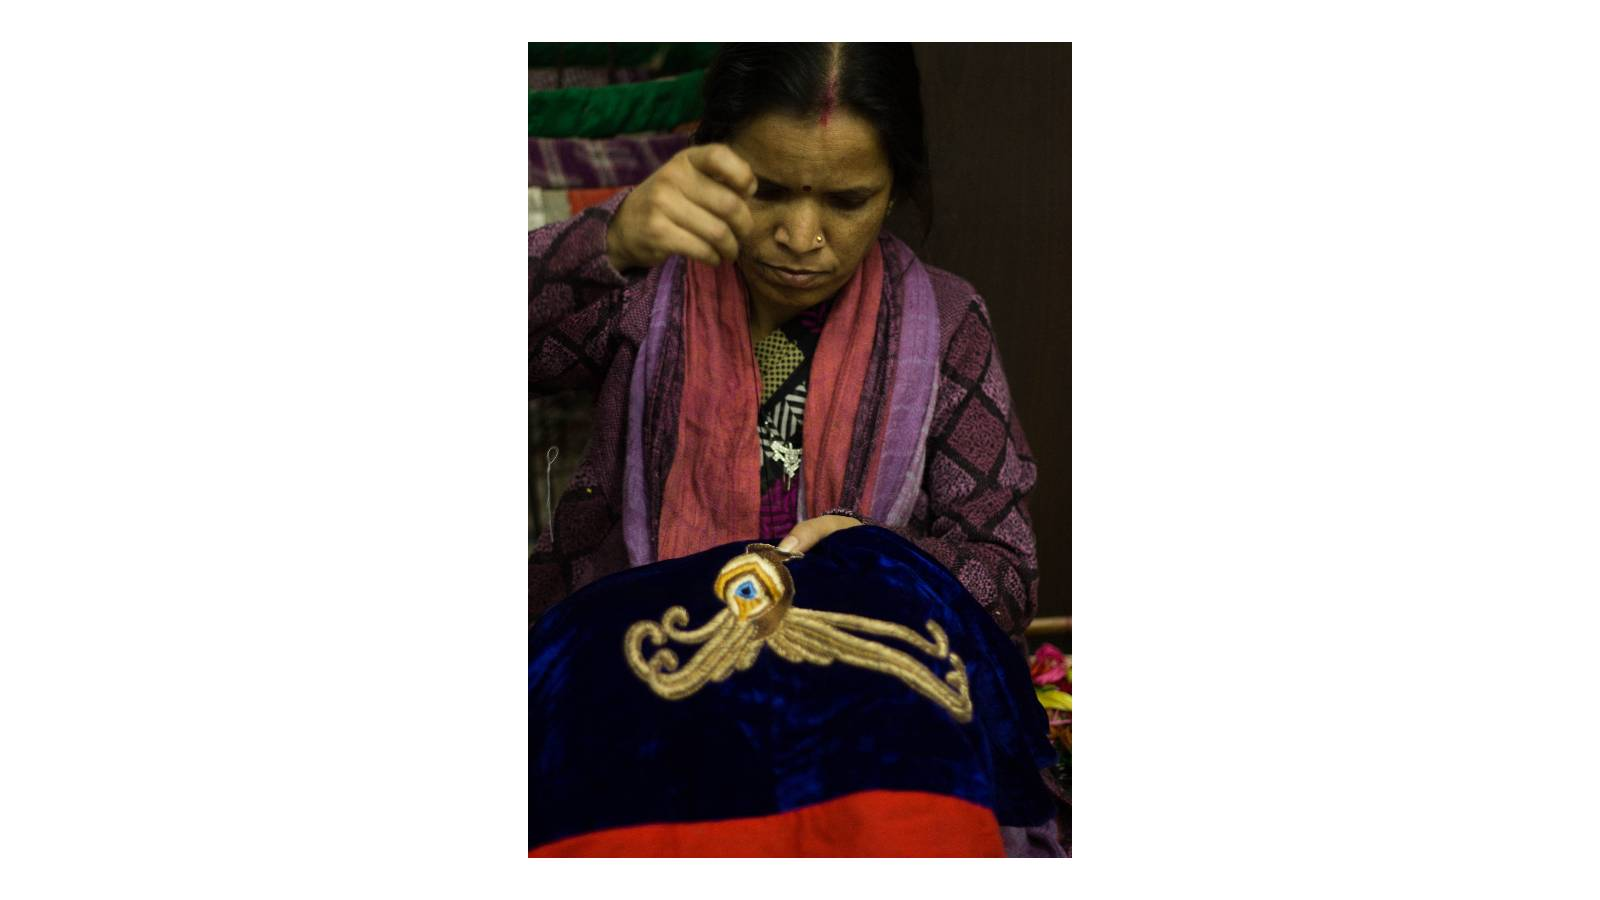 Embroidery workers_Members_Delhi